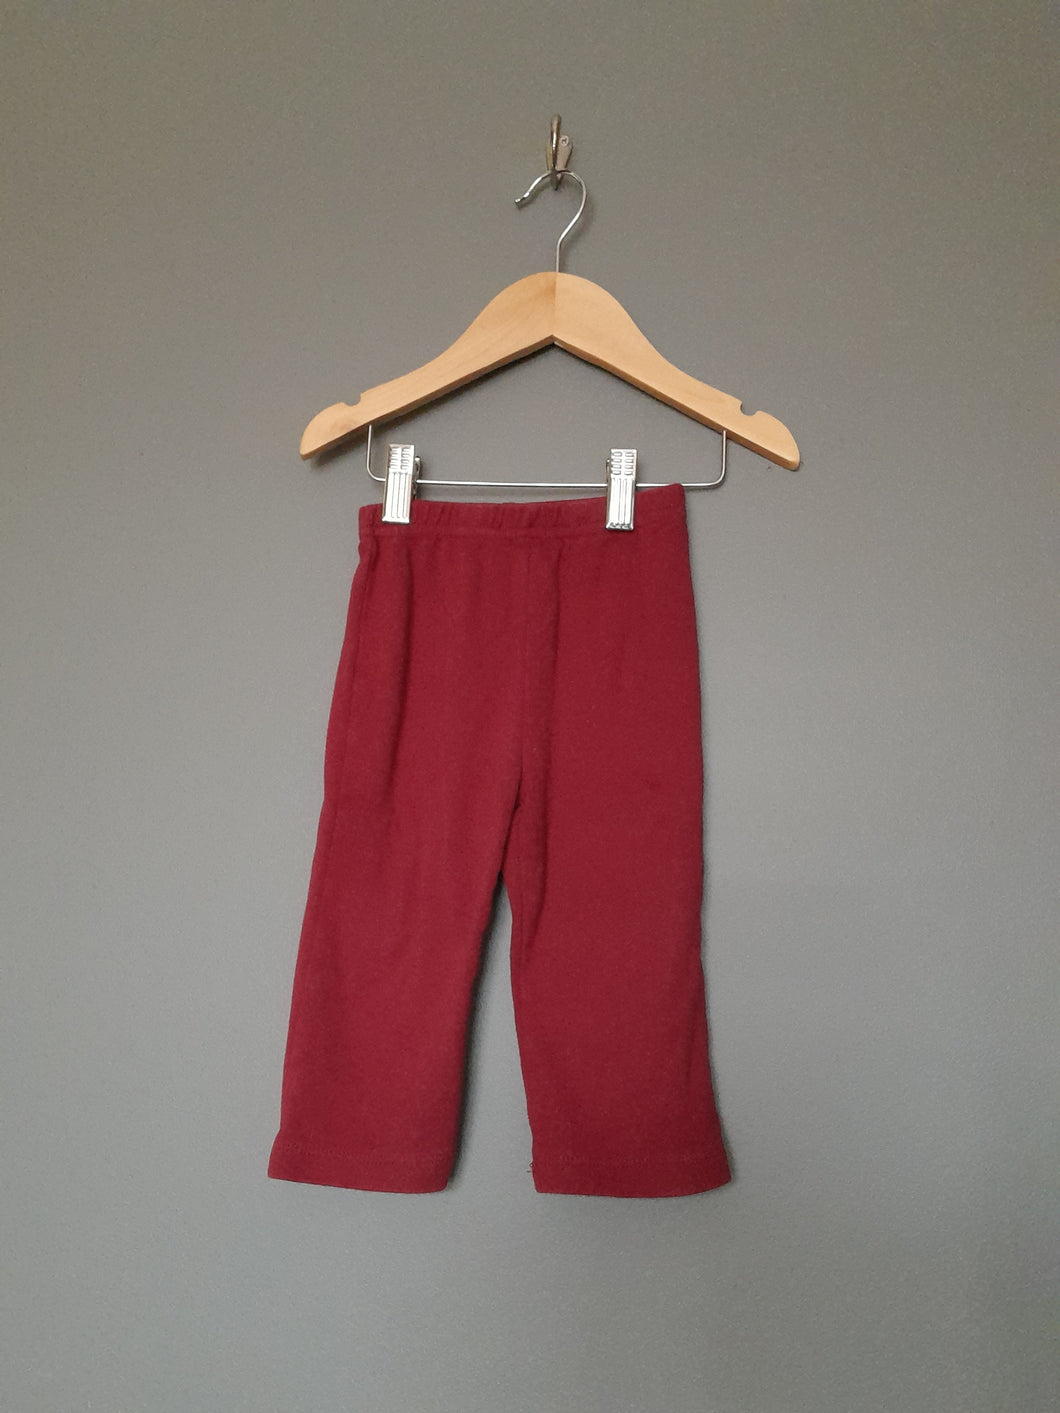 9-12 months Burgundy leggings